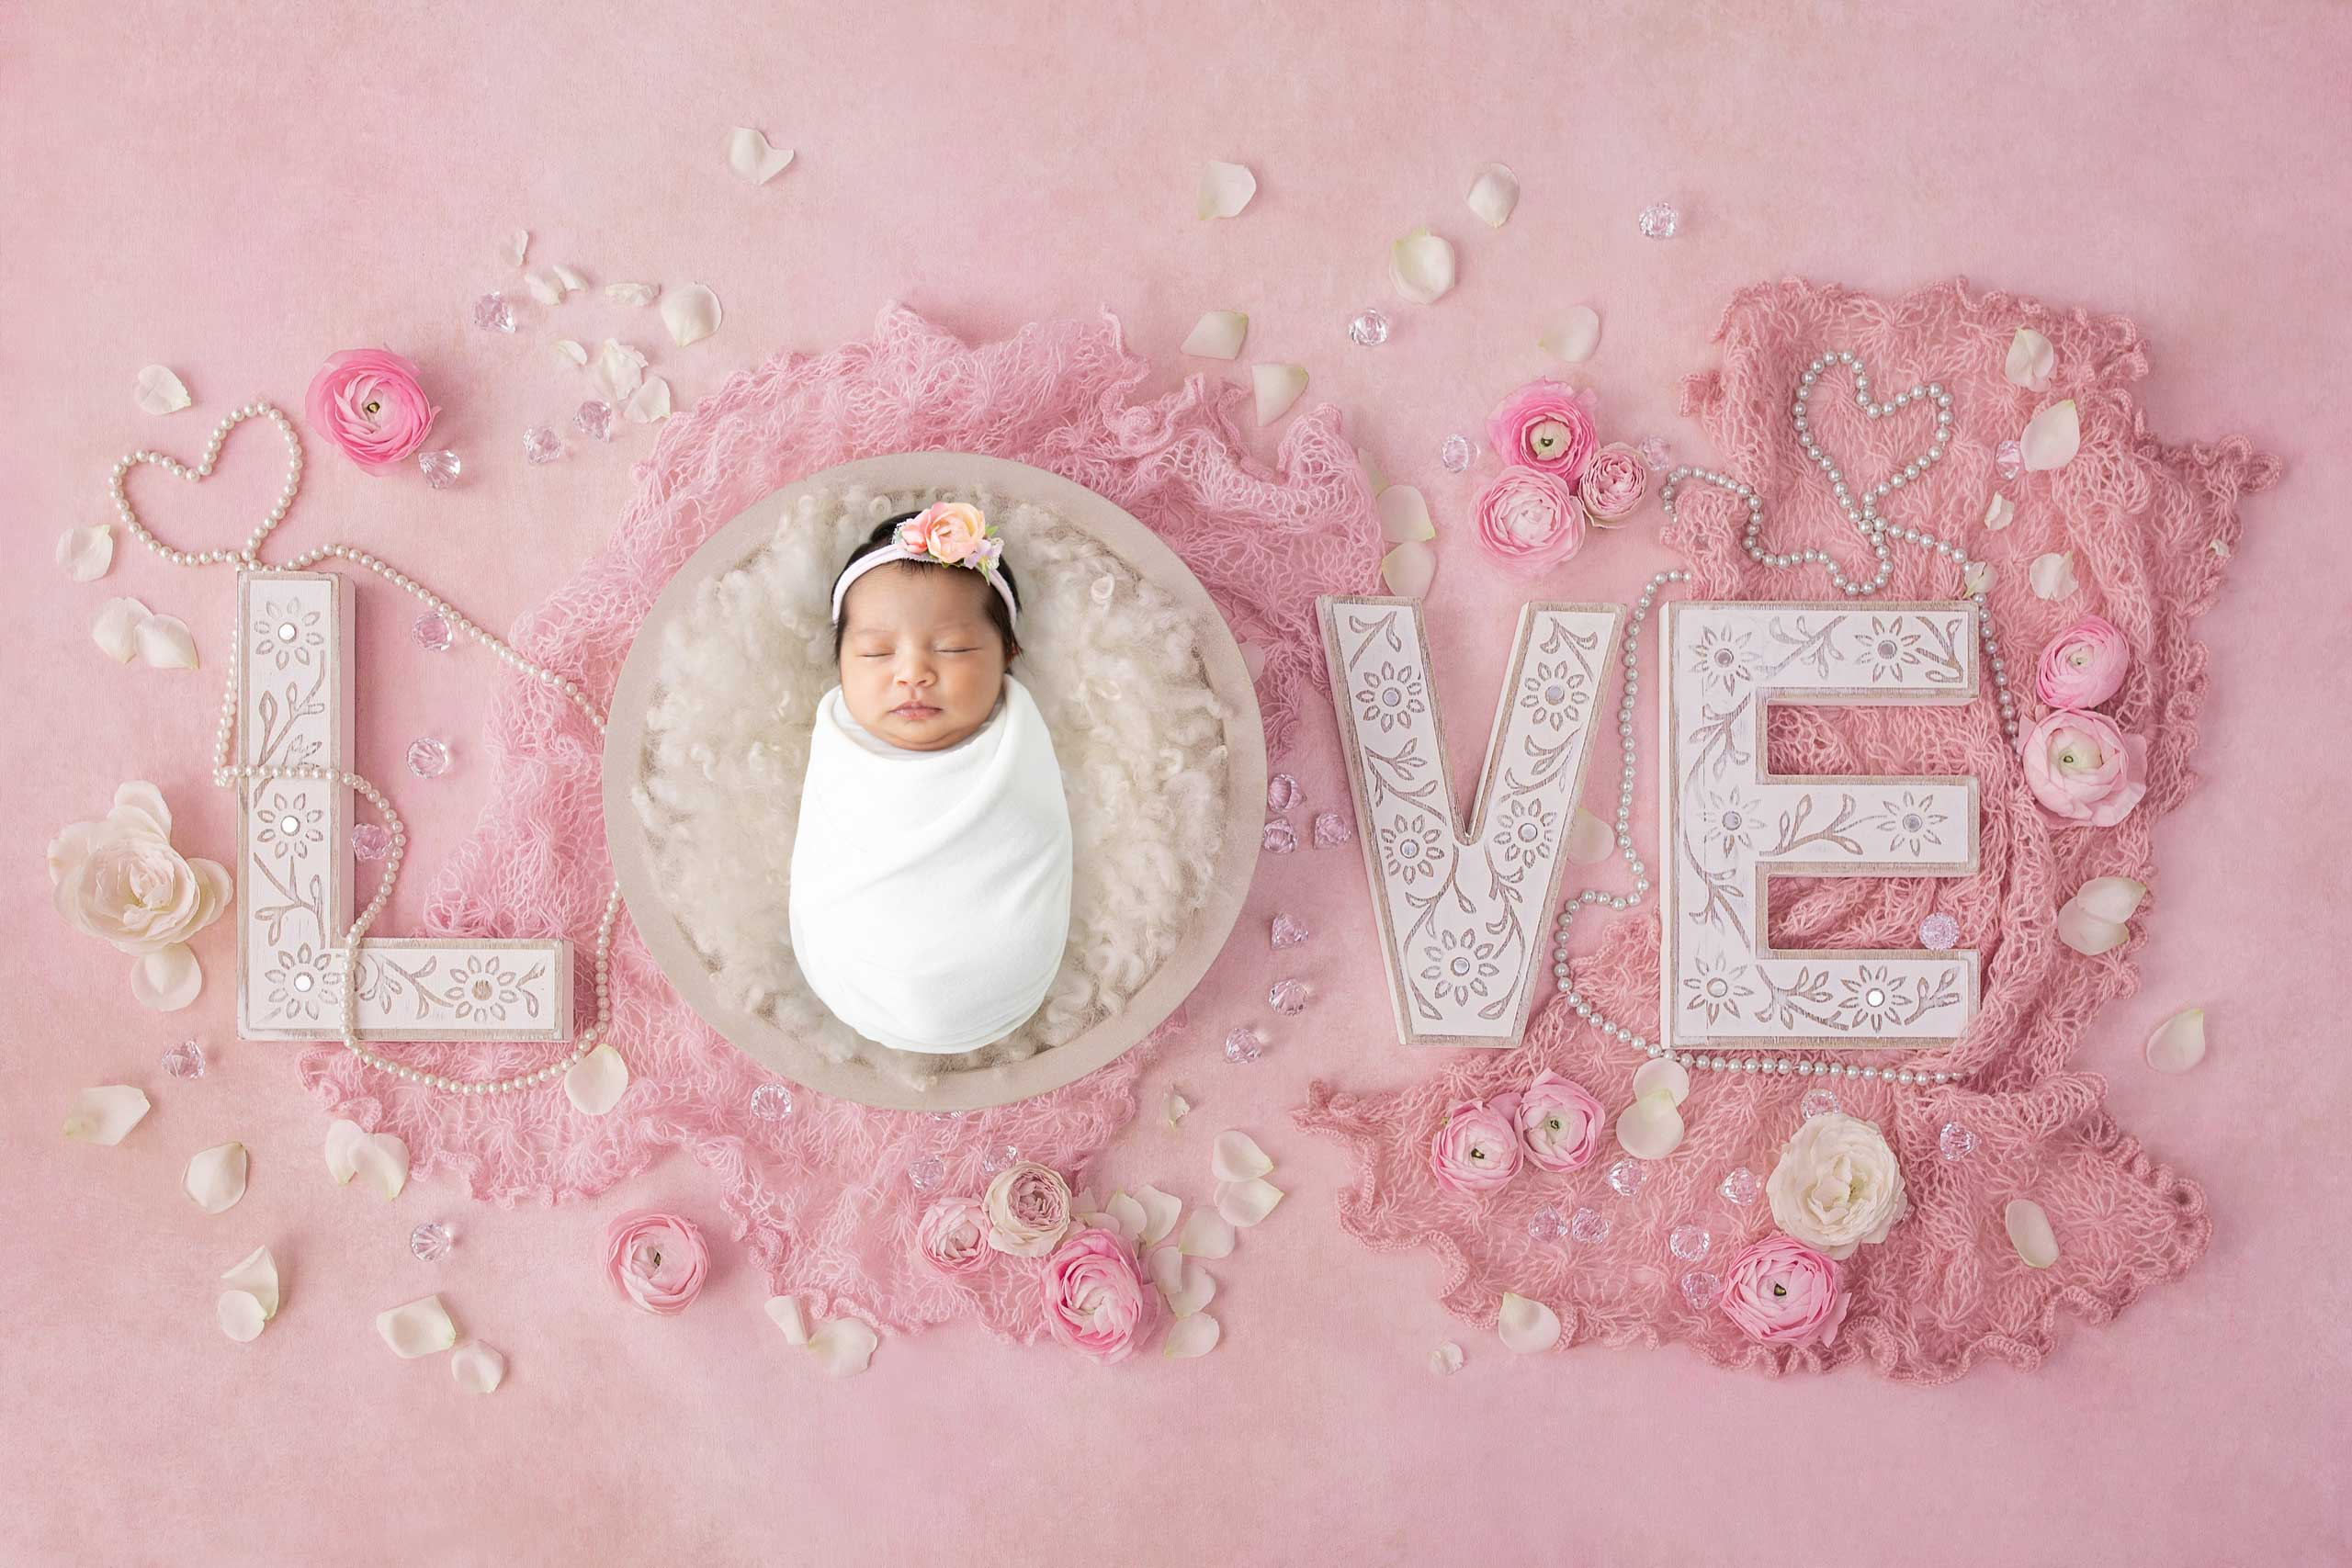 baby newborn love photograph taken in Los Angeles by Ramina Magid Photography